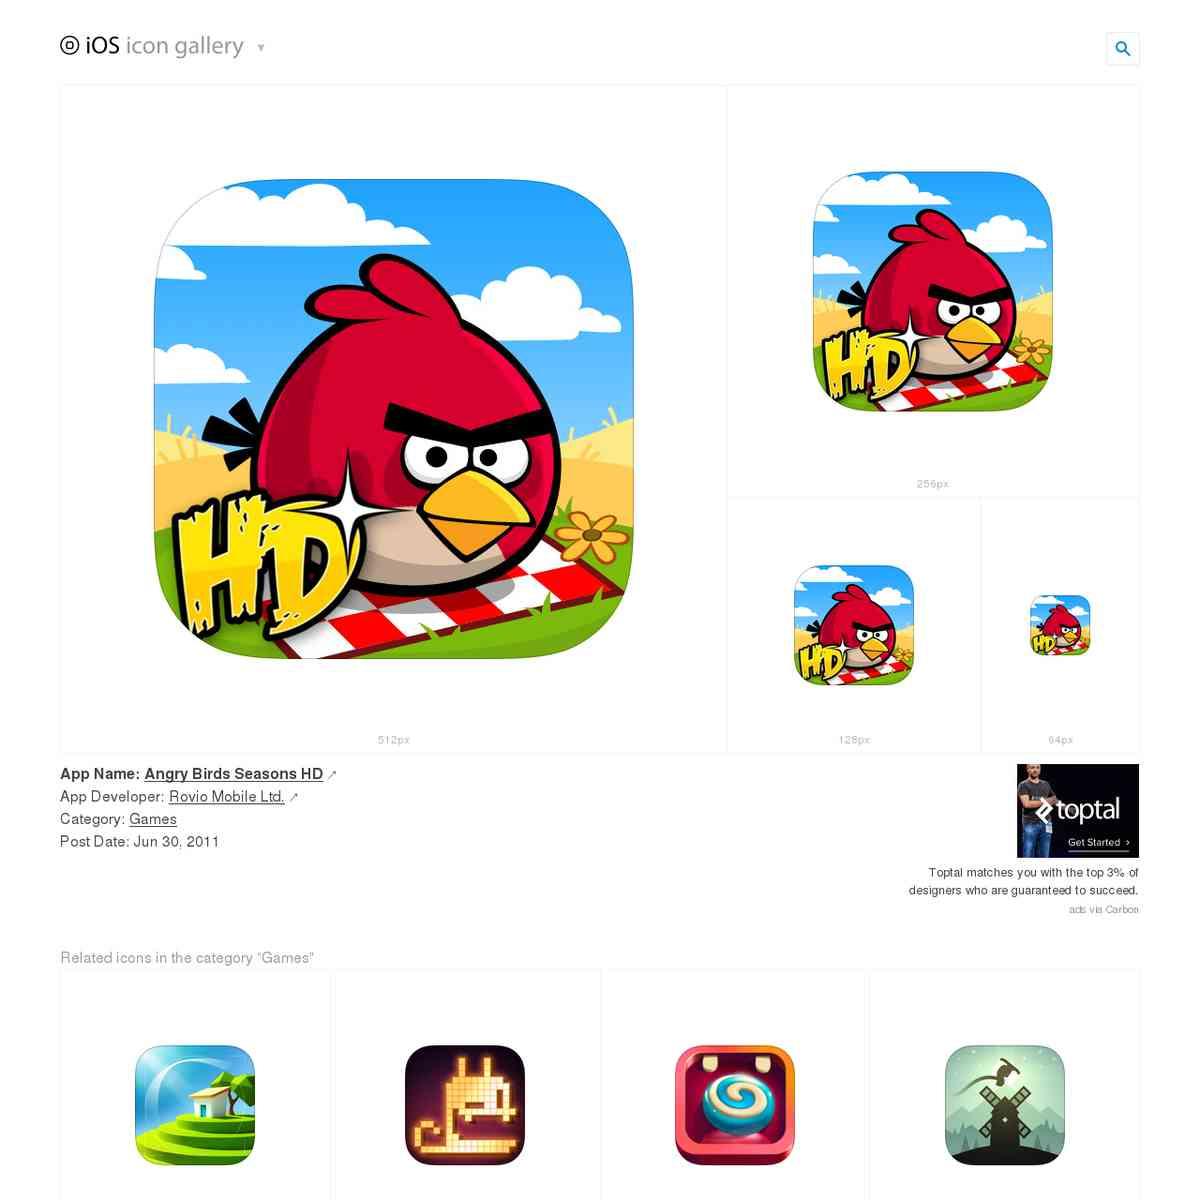 iosicongallery.com/games/angry-birds-seasons-hd/